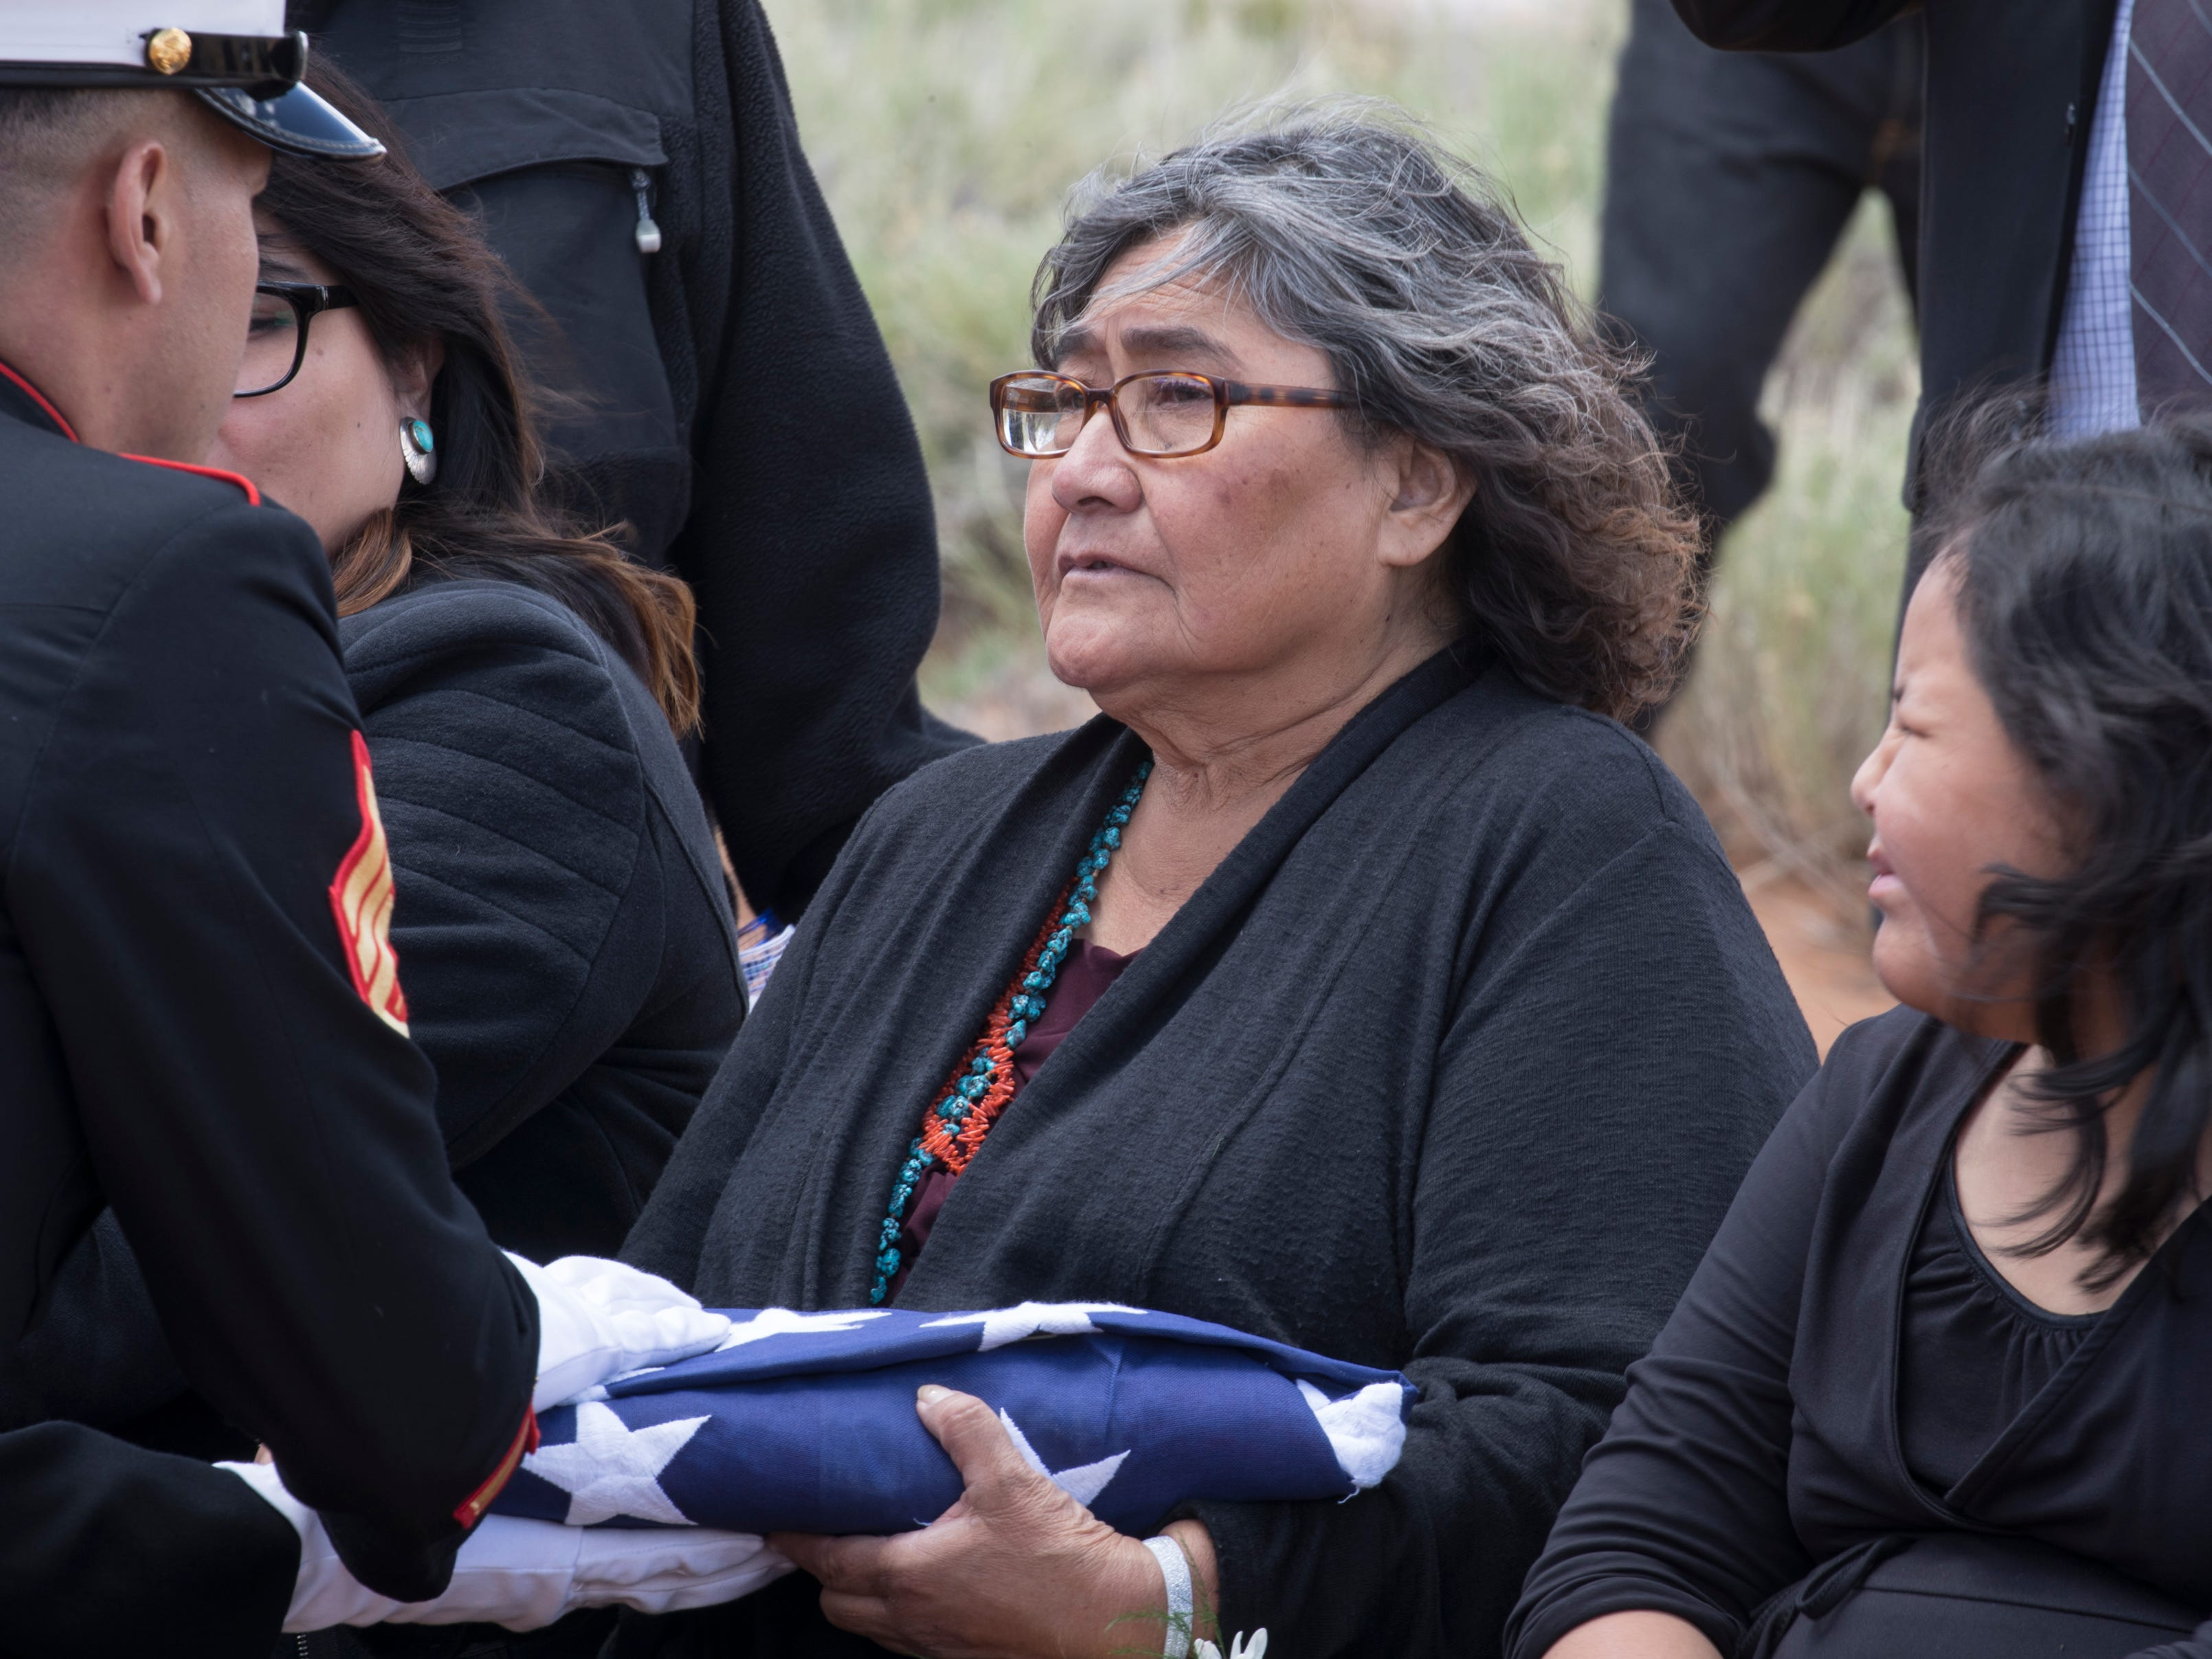 The flag was presented to Veronica Walter (daughter) during the interment of Navajo Code Talker Fleming Begaye Sr. on May 17, 2019, at the family plot in Salt Water Canyon, Ariz.